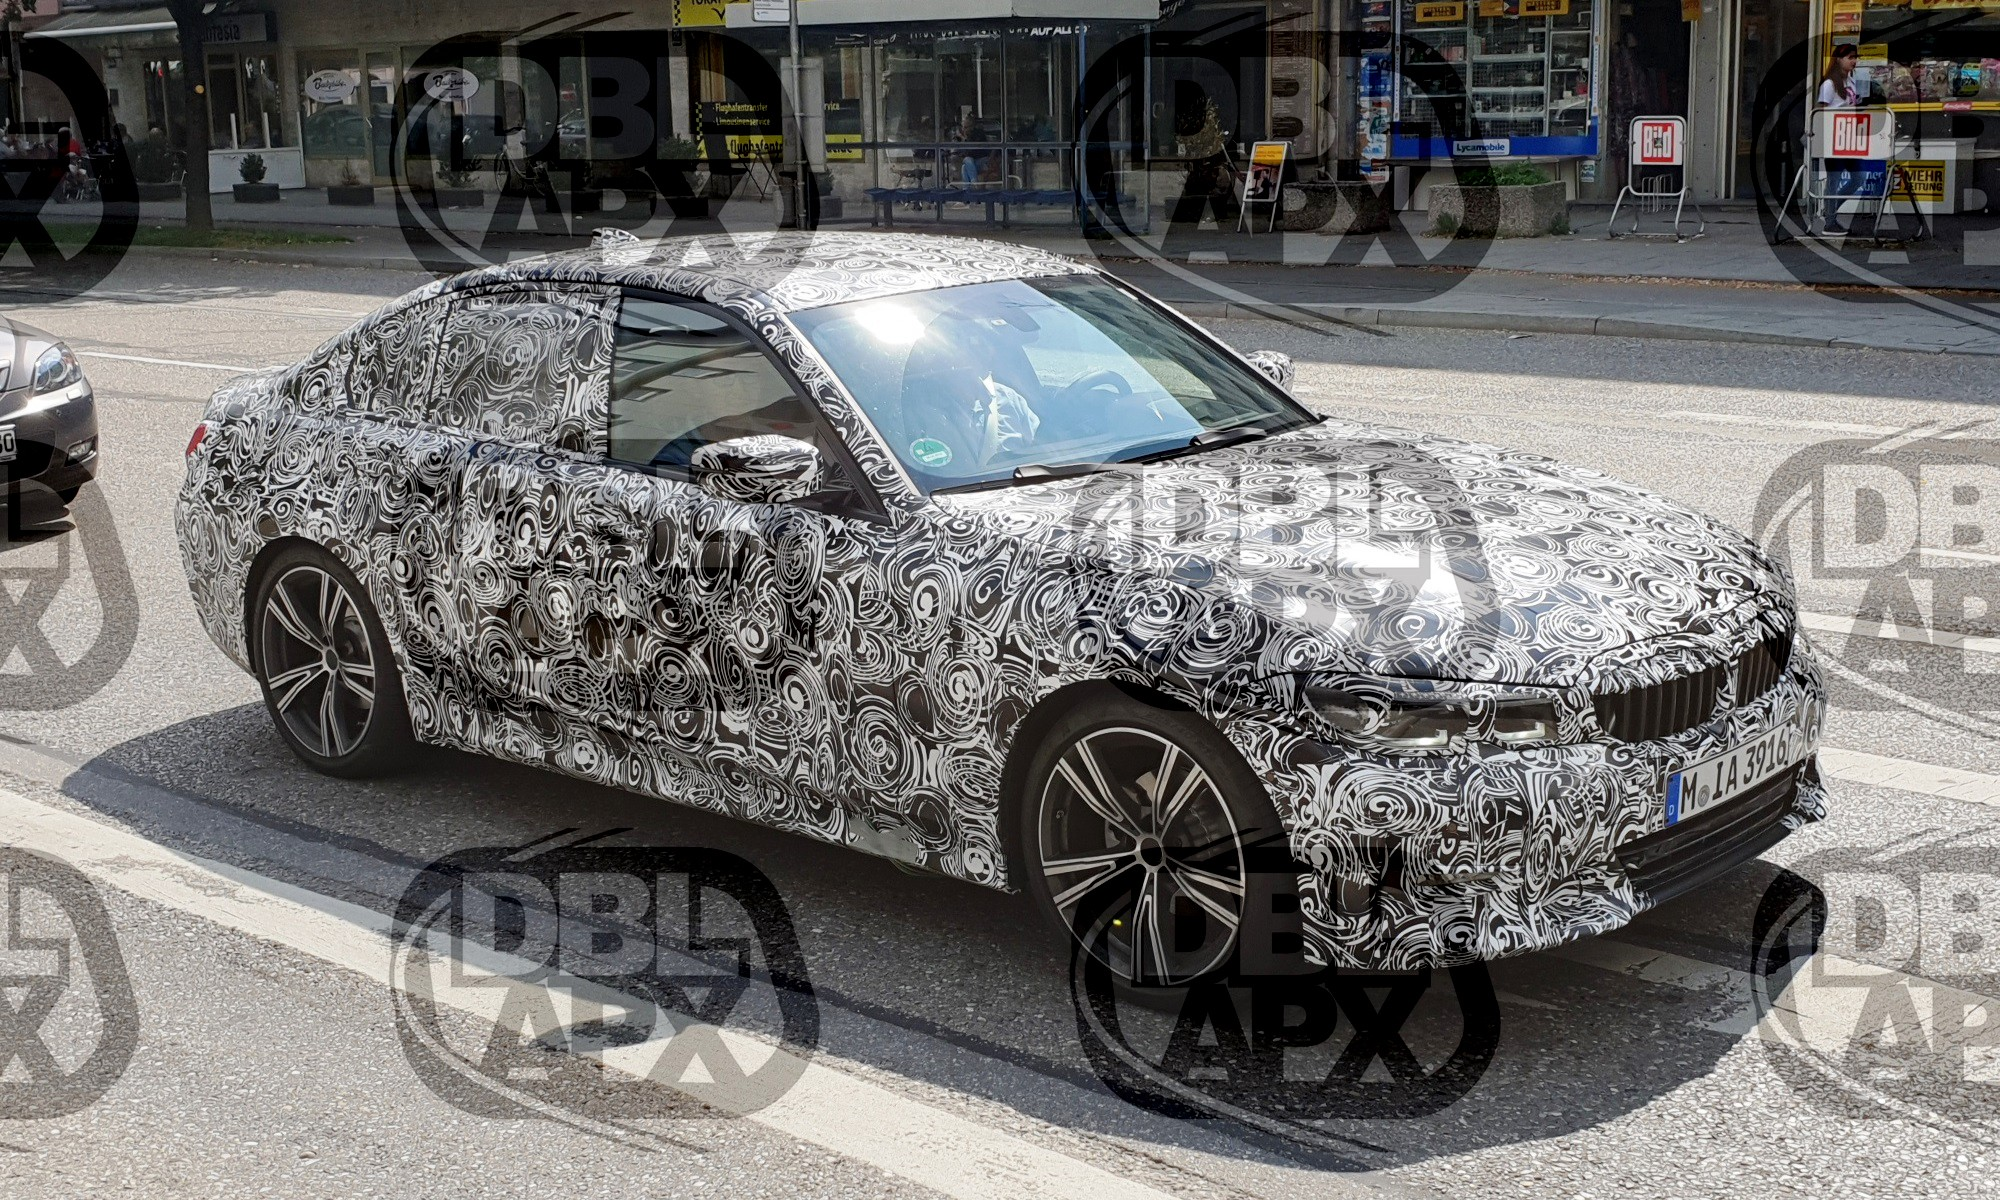 You can see the headlamp design of the new BMW 3 Series is similar to the 5 Series